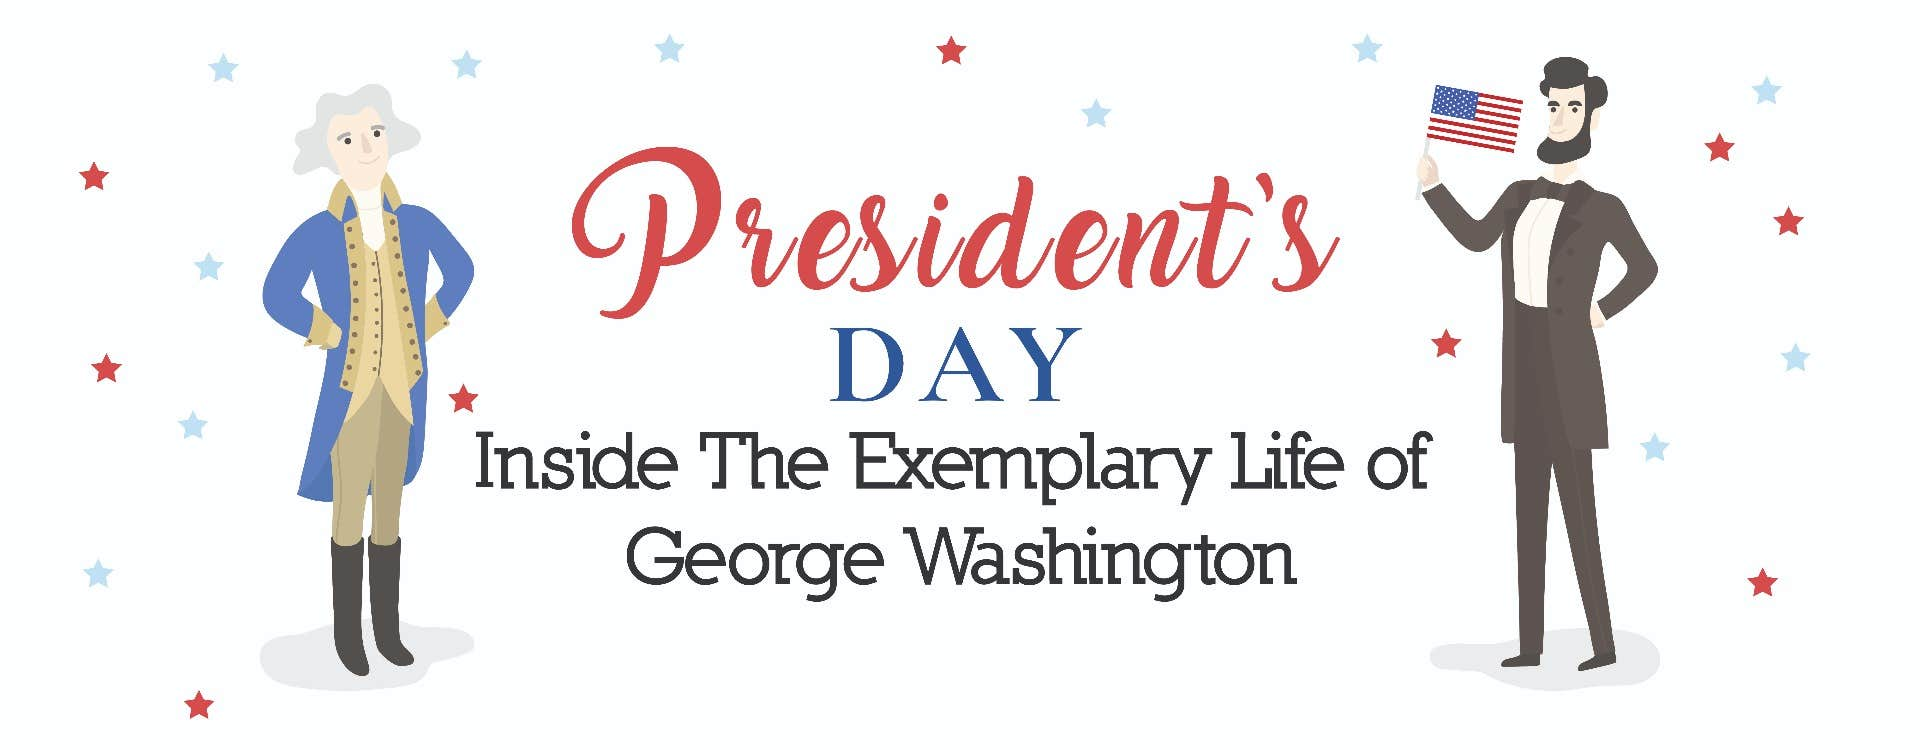 President's Day: Inside The Exemplary Life of George Washington